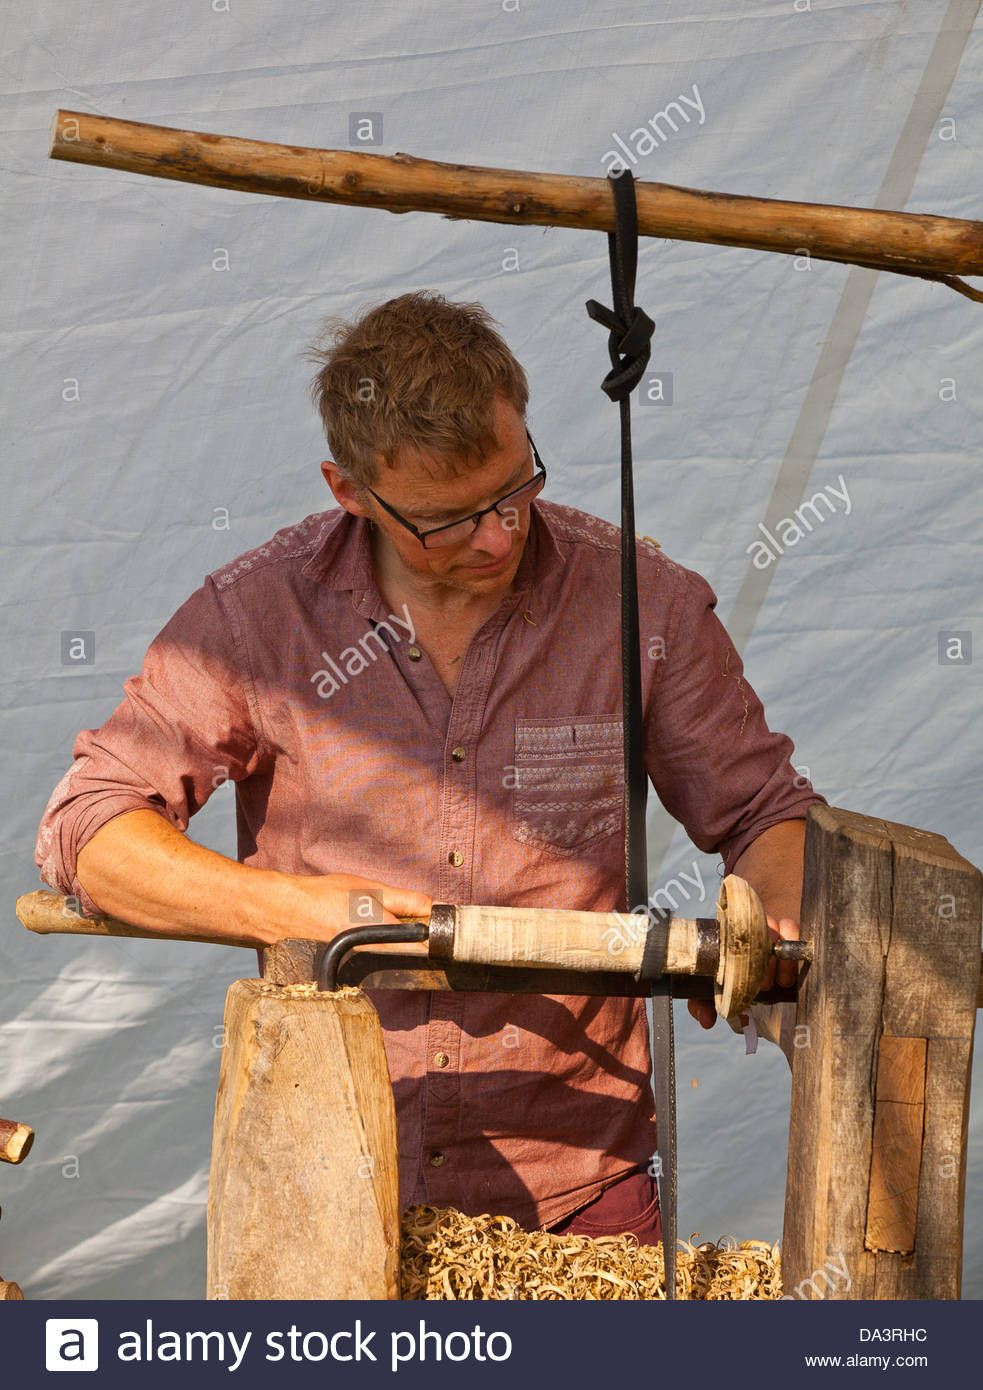 A man wood turning at Glastonbury Festival of Contemporary